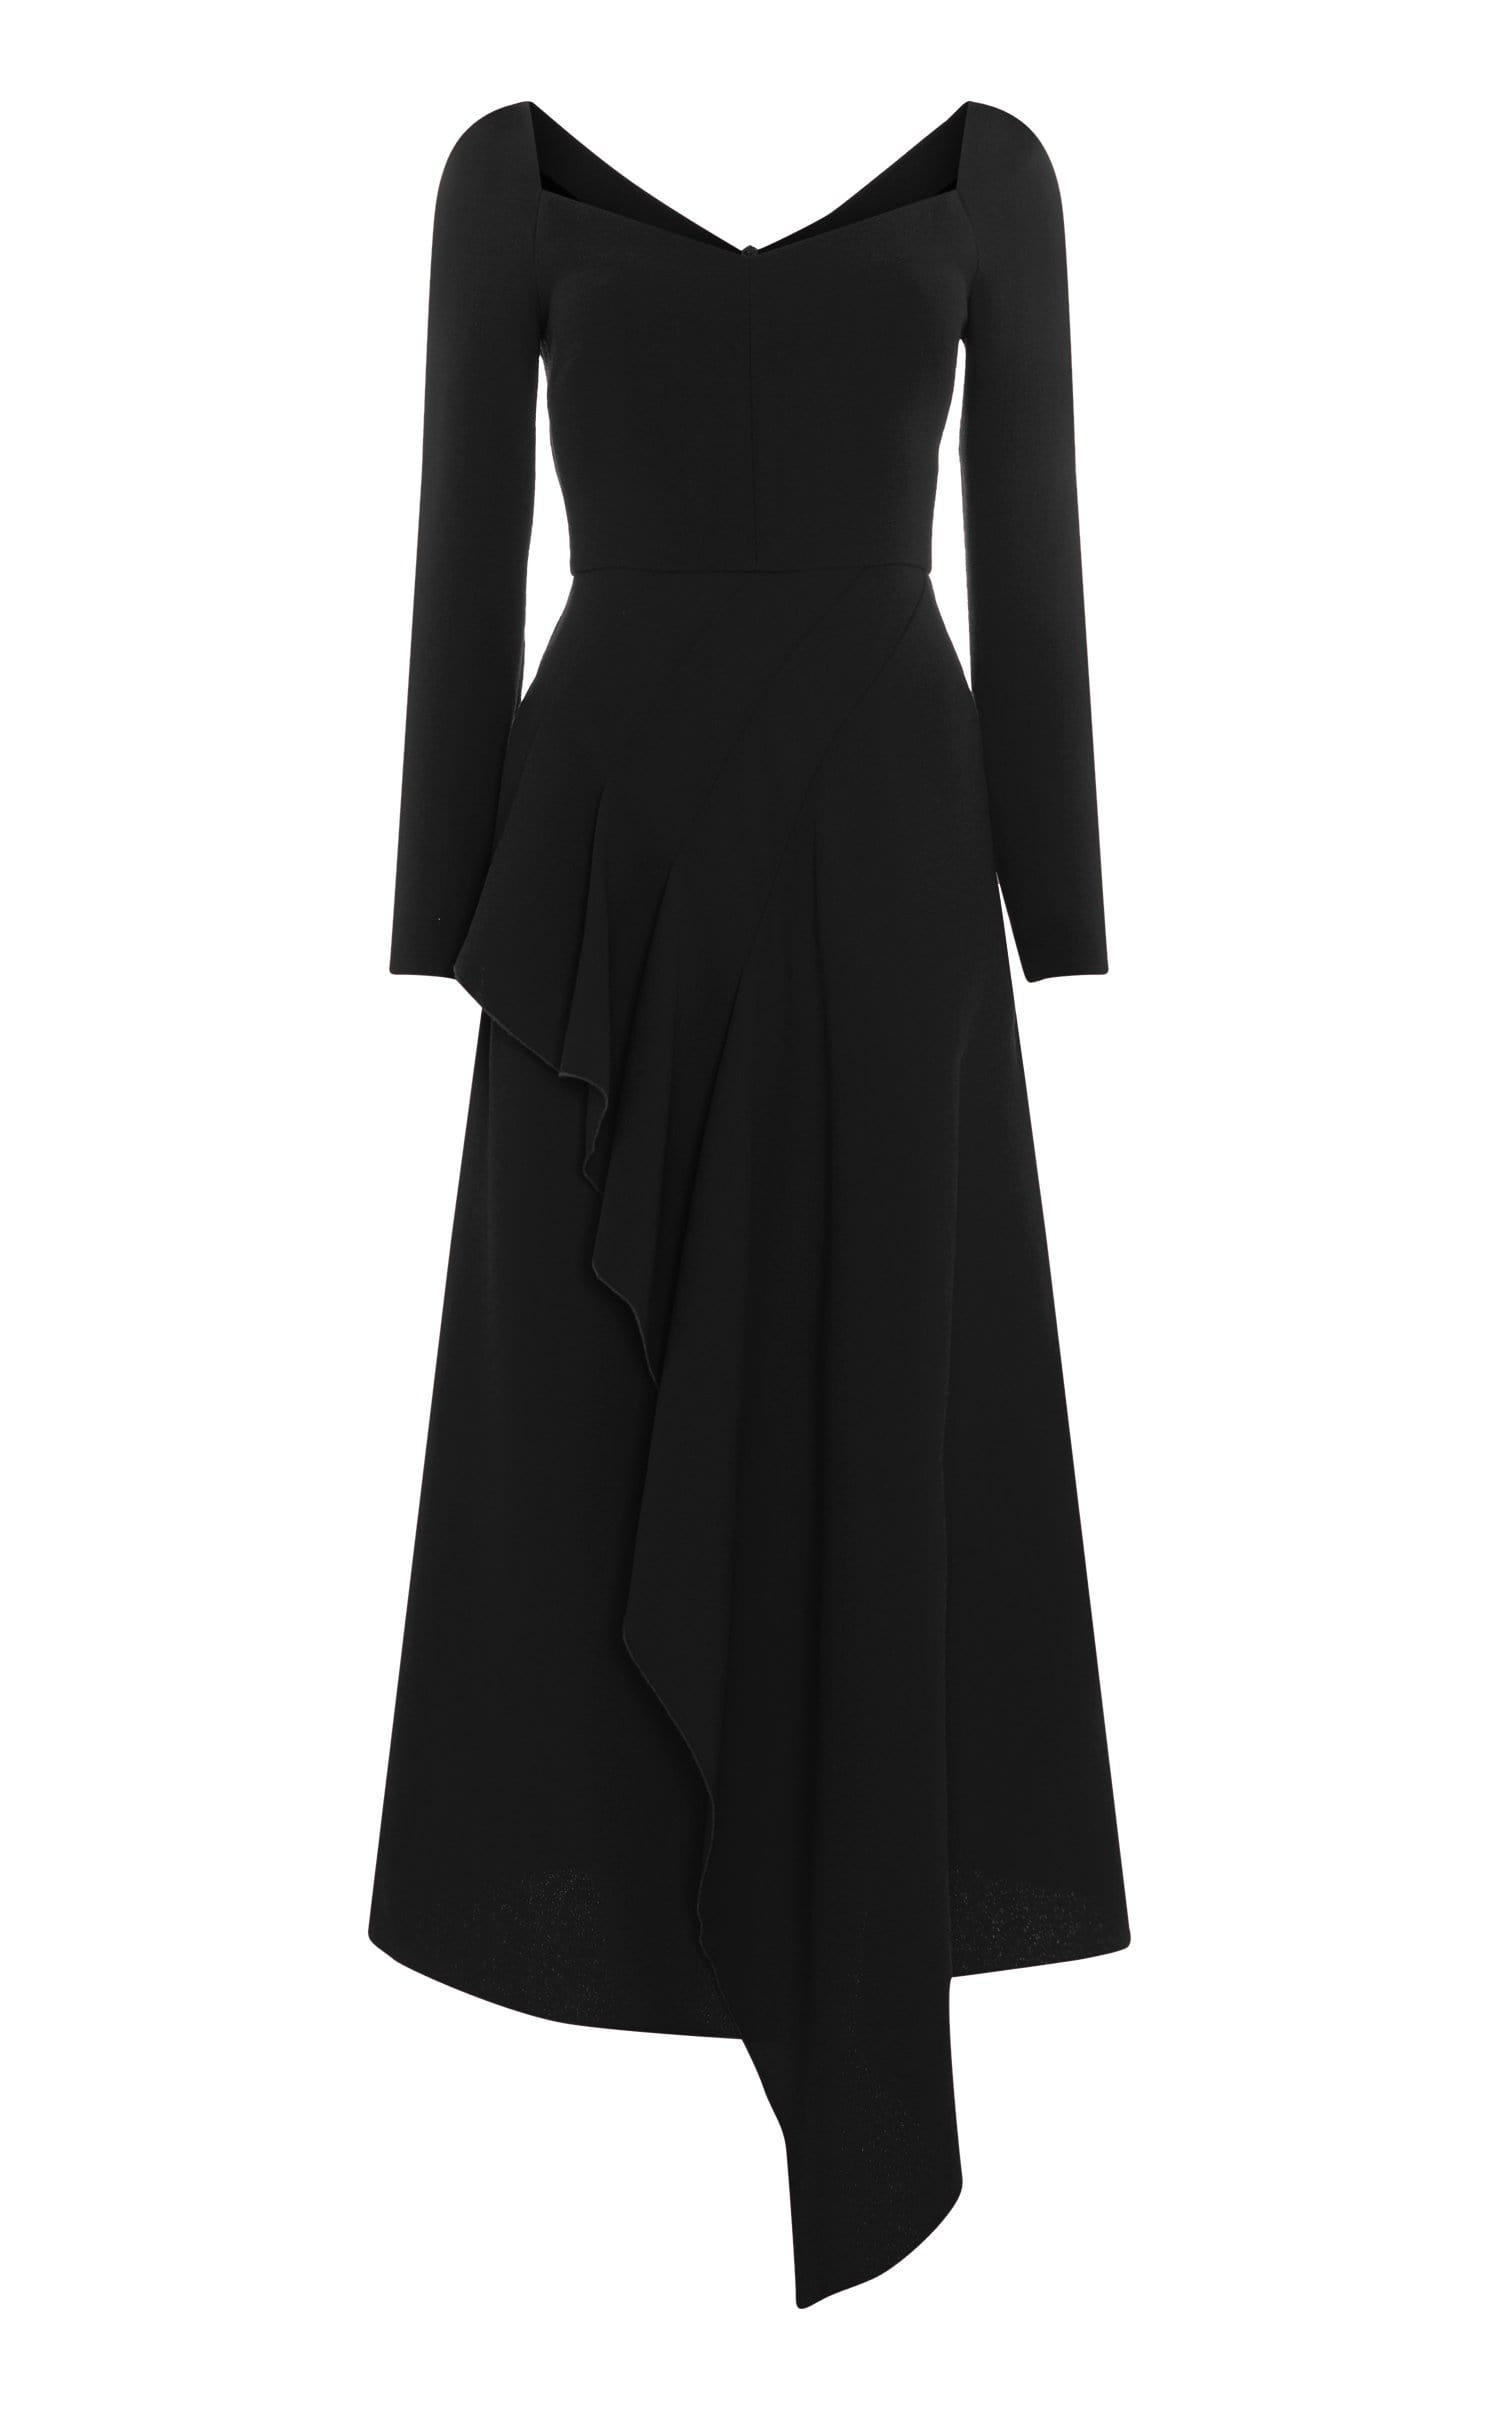 Blackwater Dress